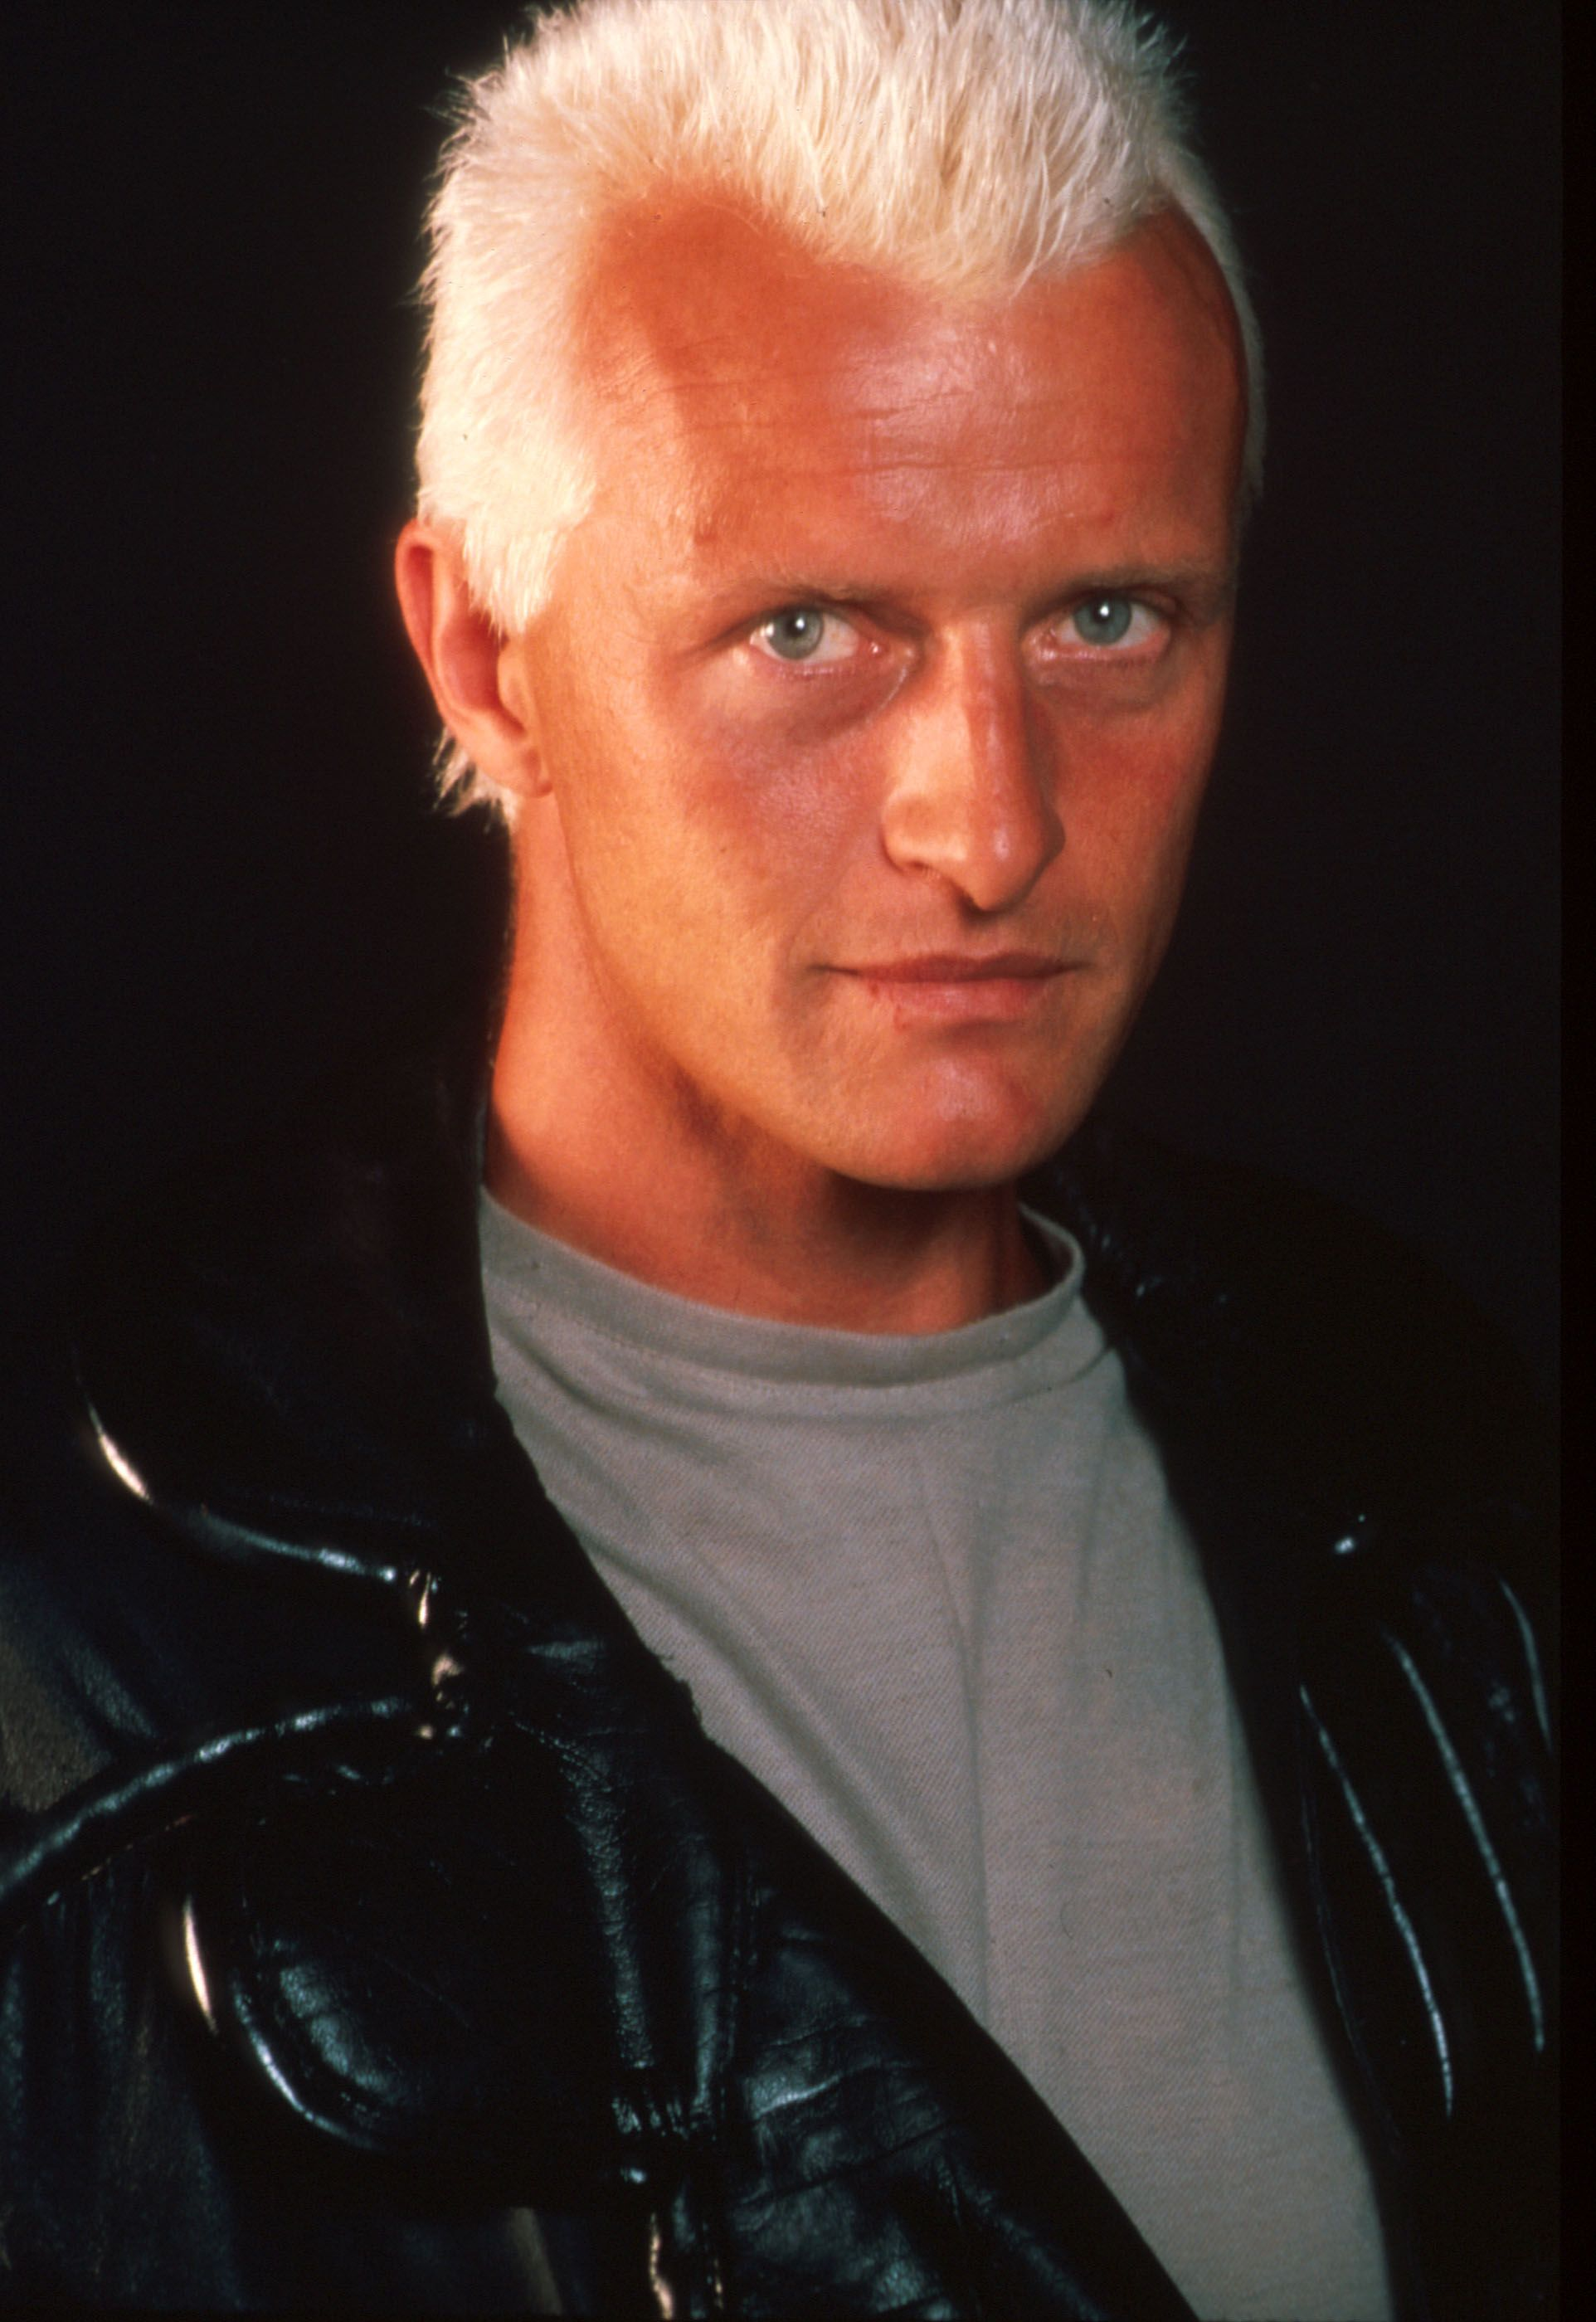 rutger hauer blade runnerrutger hauer blade runner, rutger hauer young, rutger hauer 2016, rutger hauer height, rutger hauer blade runner speech, rutger hauer hitcher, rutger hauer films, rutger hauer turkish delight, rutger hauer imdb, рутгер хауэр lexx, rutger hauer anthony hopkins, rutger hauer best movies, rutger hauer quotes, rutger hauer sin city, rutger hauer tattoos, rutger hauer blind, rutger hauer tumblr, rutger hauer wiki, rutger hauer monologue, рутгер хауэр фильмы